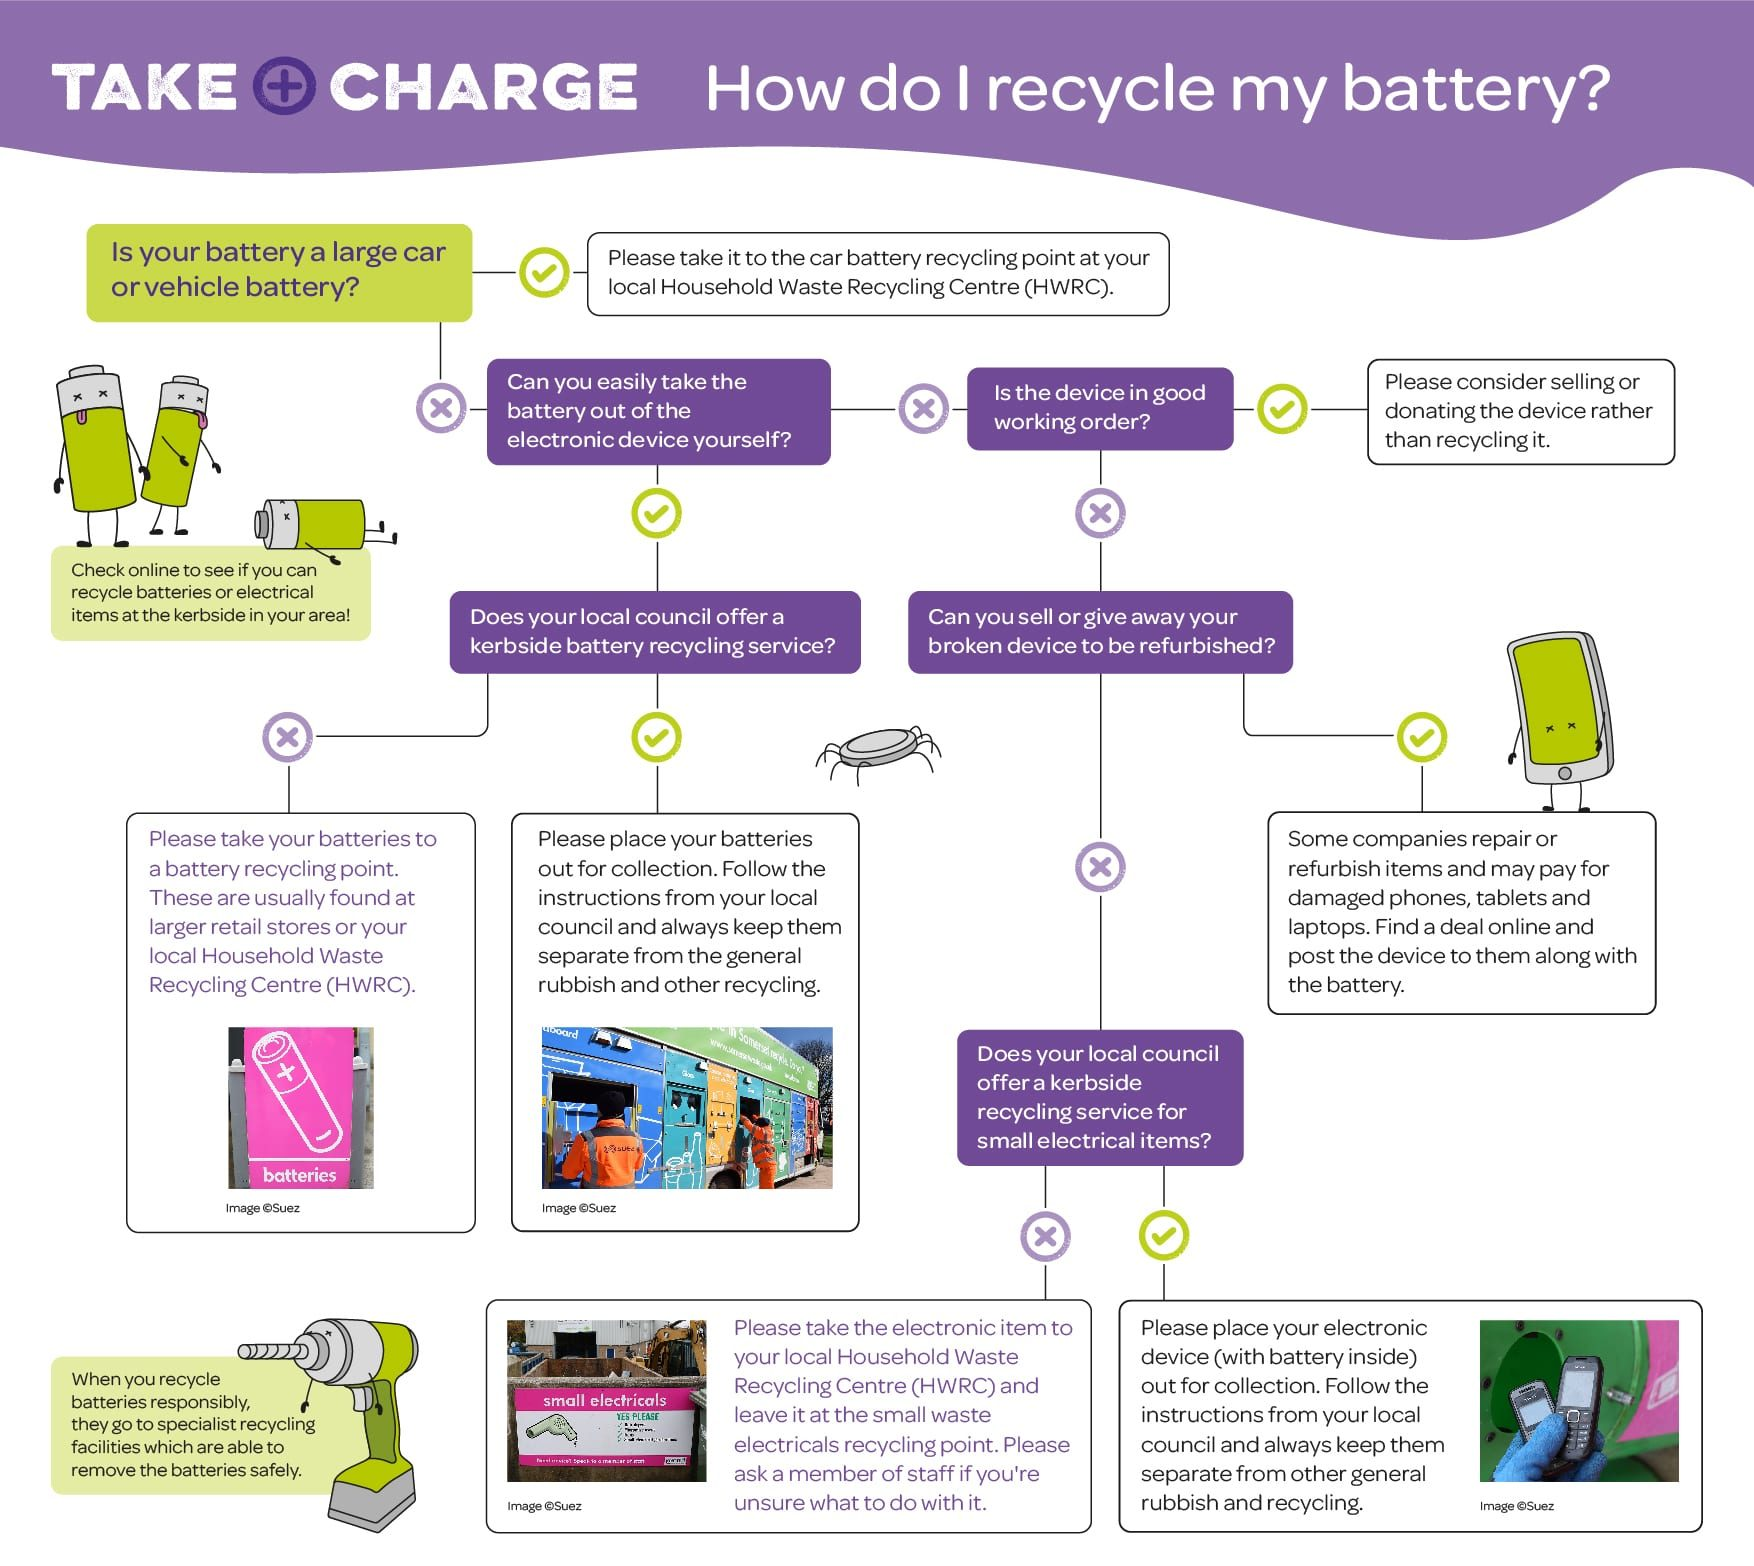 Battery Decision Tree Infographic showing how to recycle different batteries